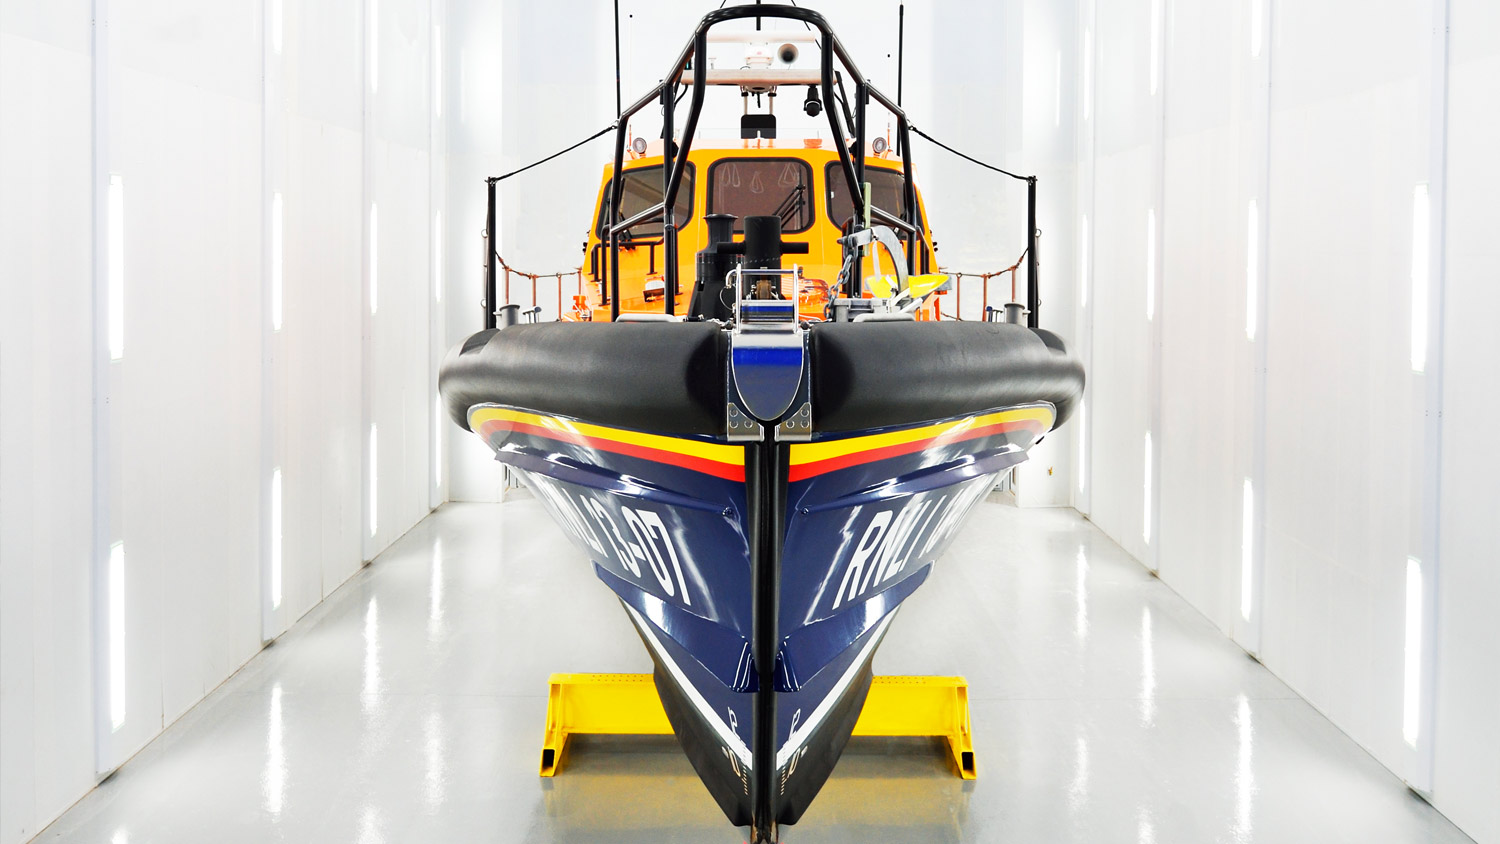 One of our relief Shannons, Reg, in our All-Weather Lifeboat Centre